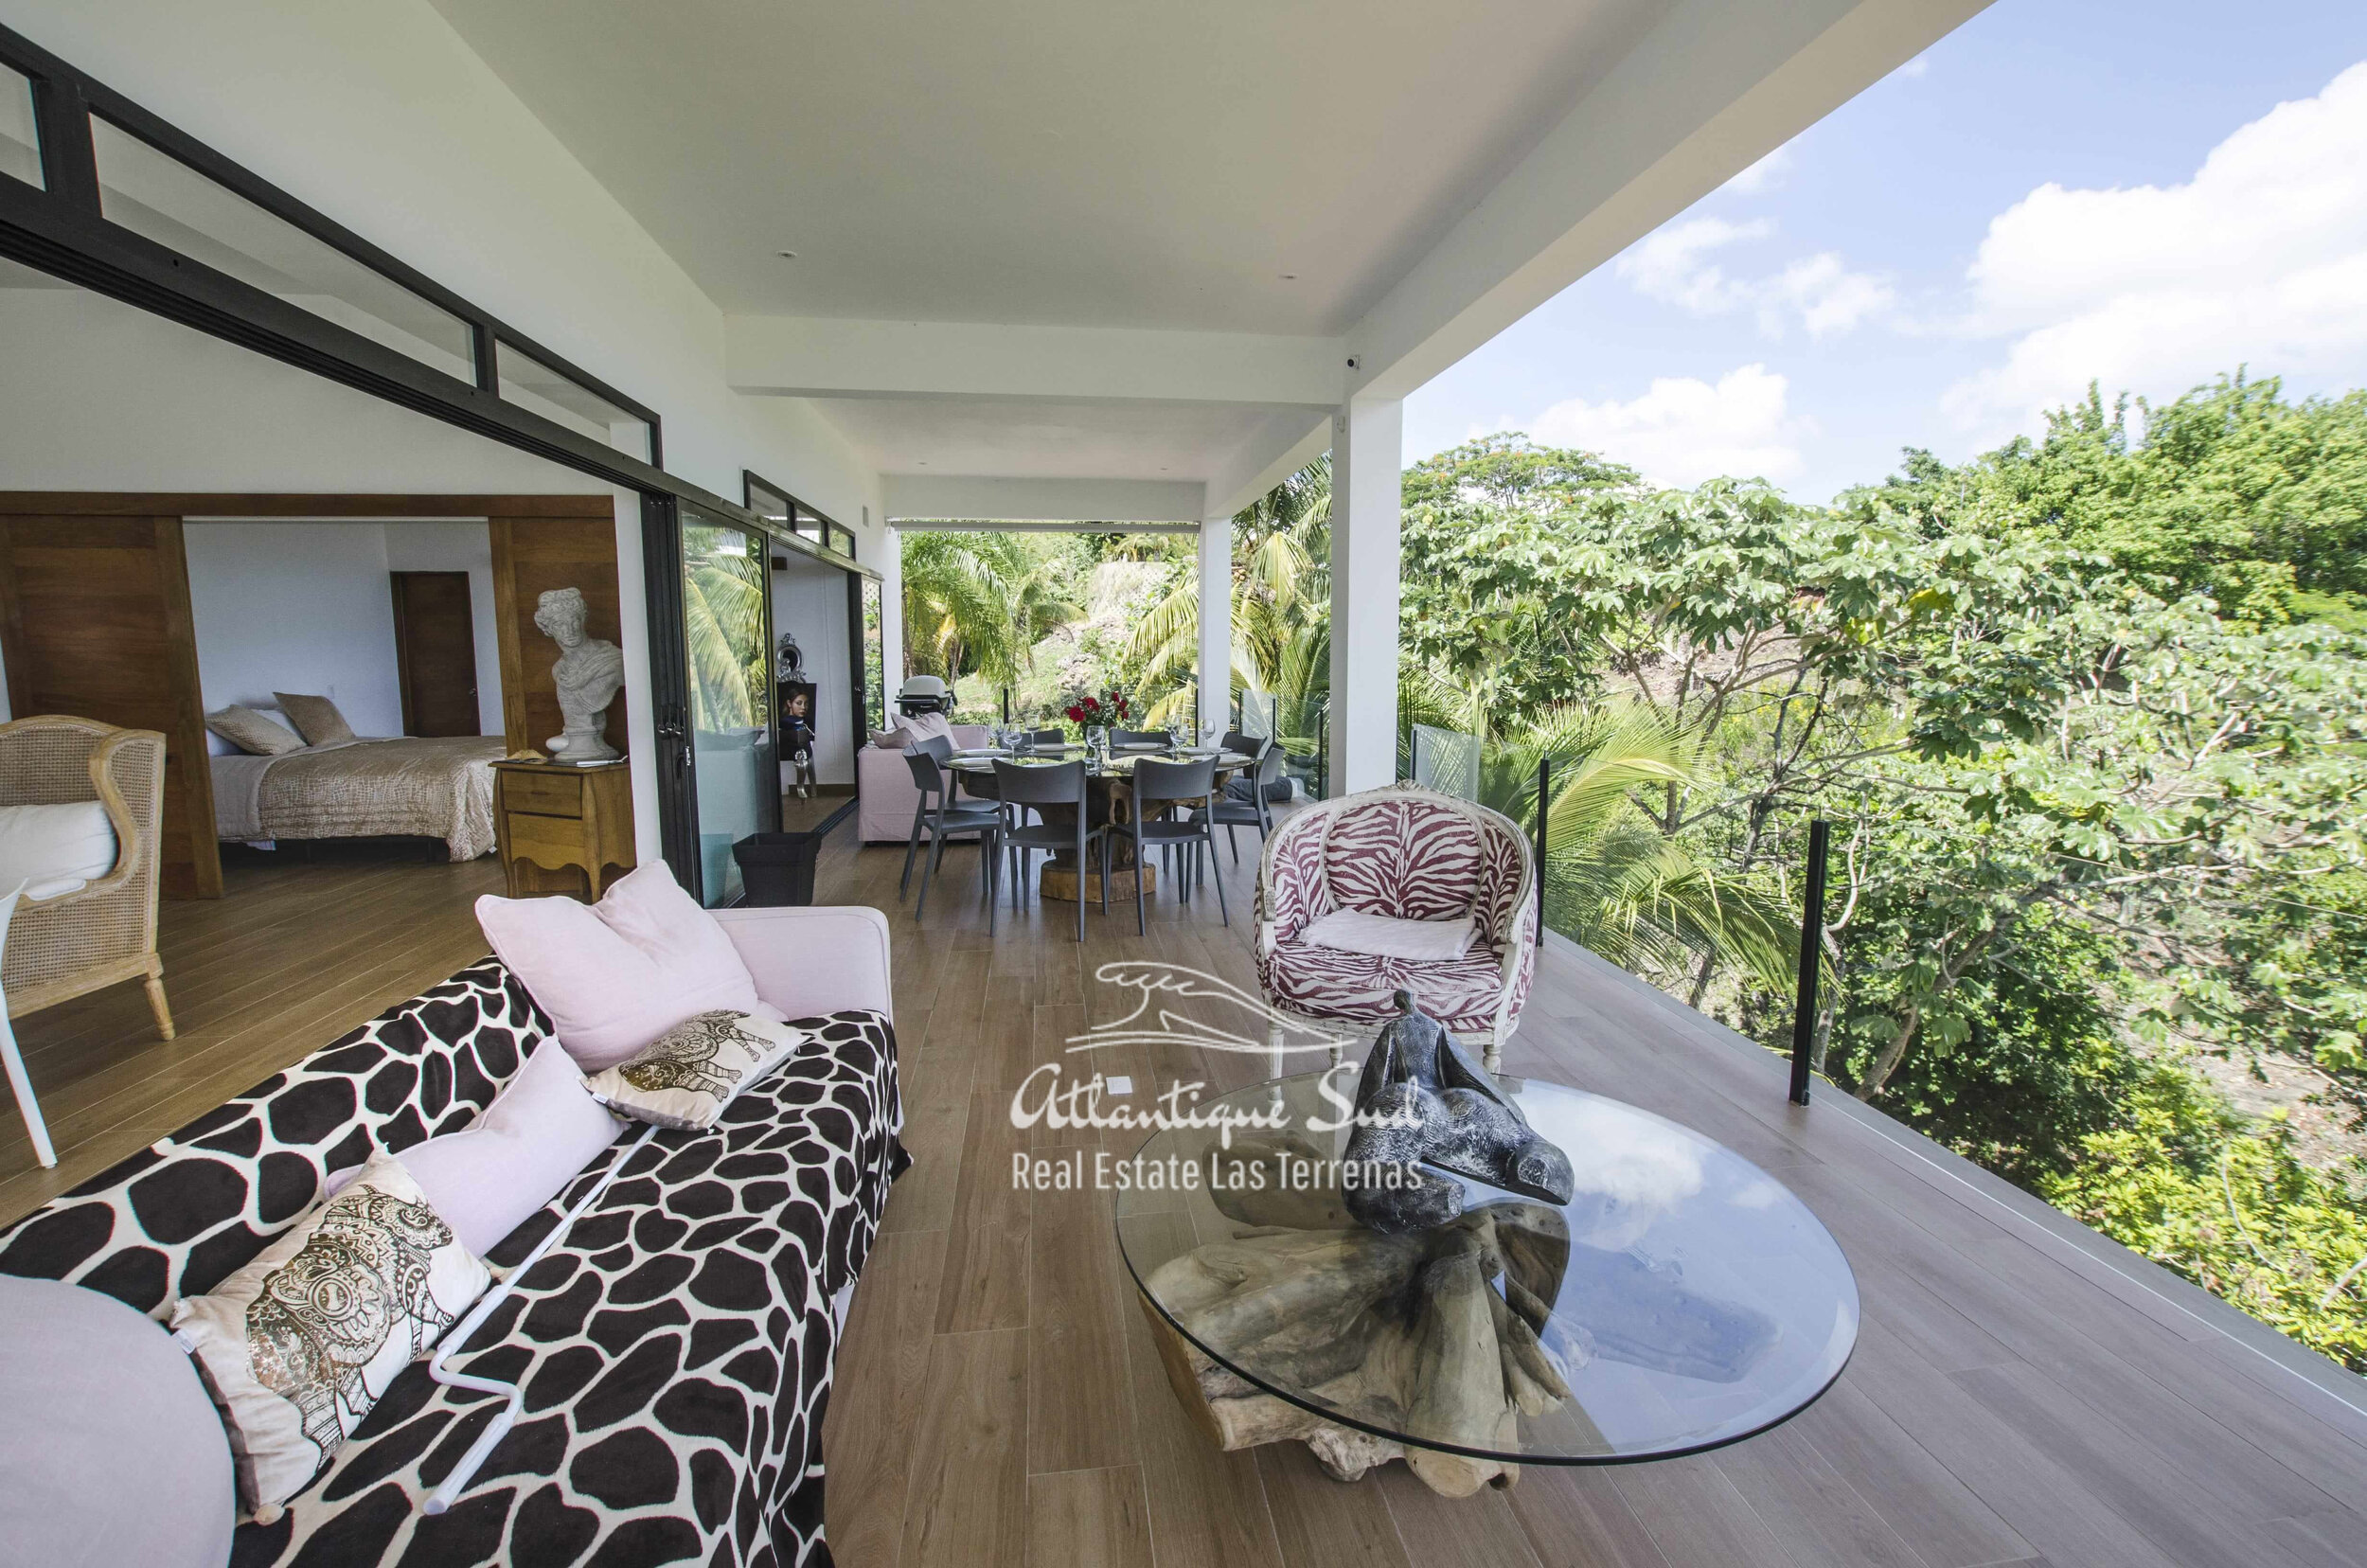 3BR Villa for sale in verde hill las terrenas 42-min.jpg